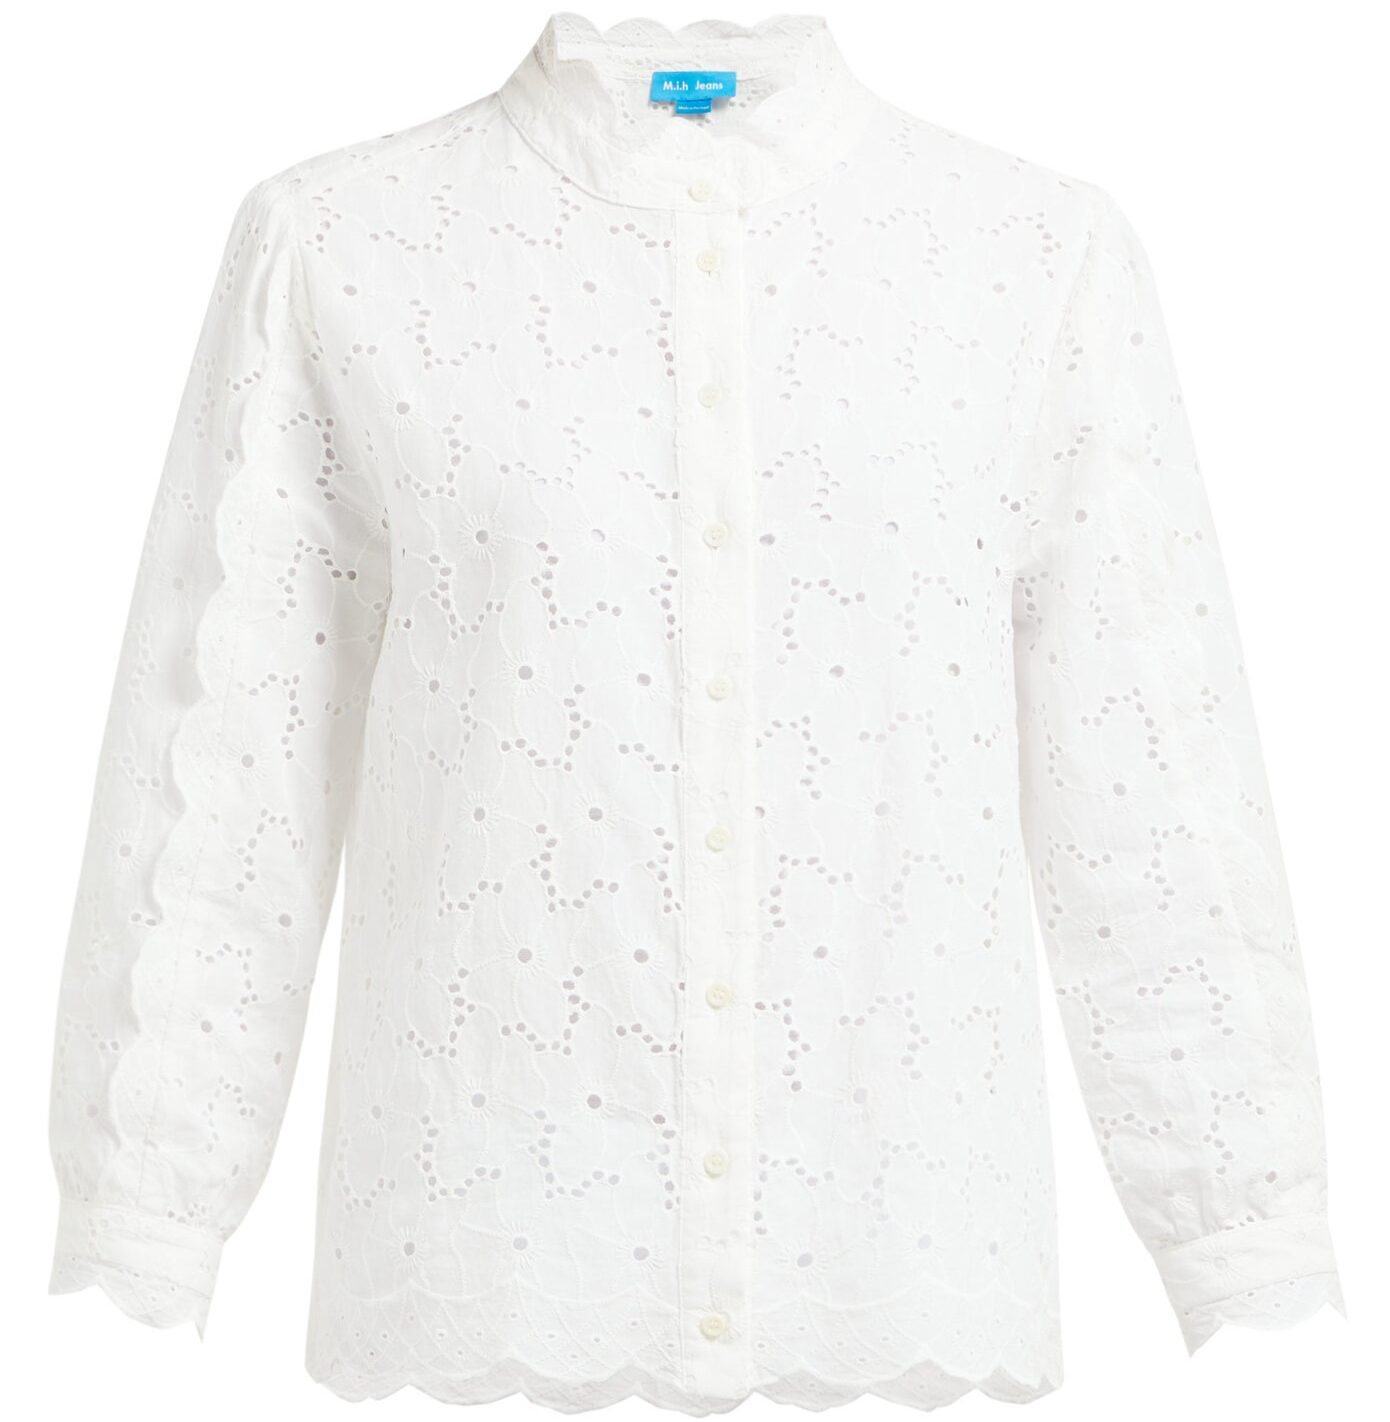 M.I.H Mabel Broderie-Anglaise Cotton Shirt